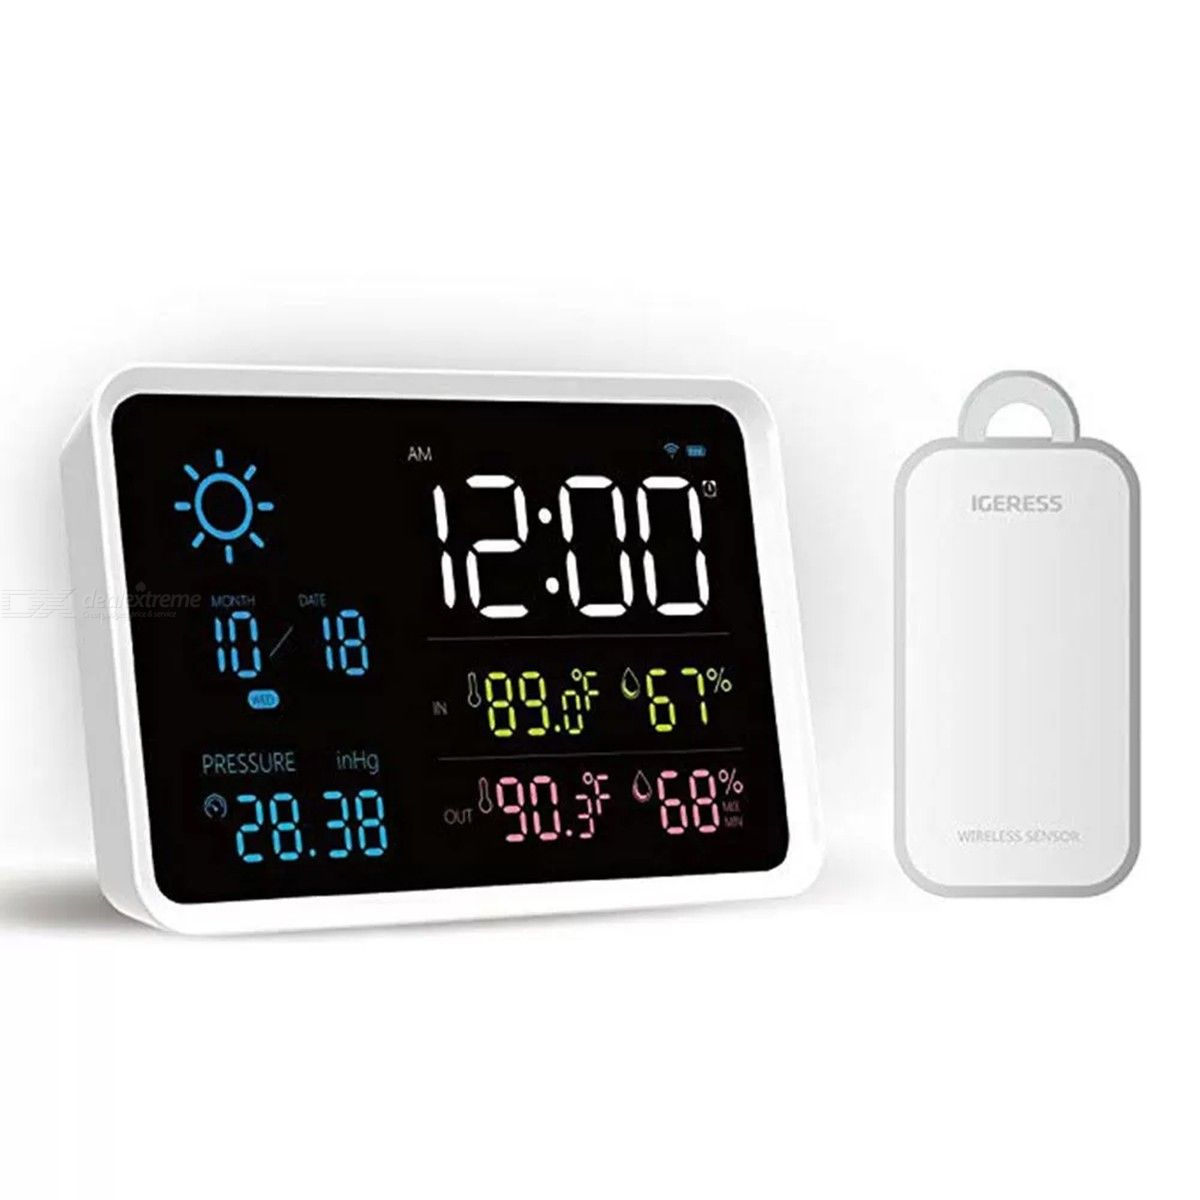 Xiaomi Youpin YUIHome Digital Clock Weather Station Temperature Humidity Display Air Pressure Weather Forecast Alarm Clock